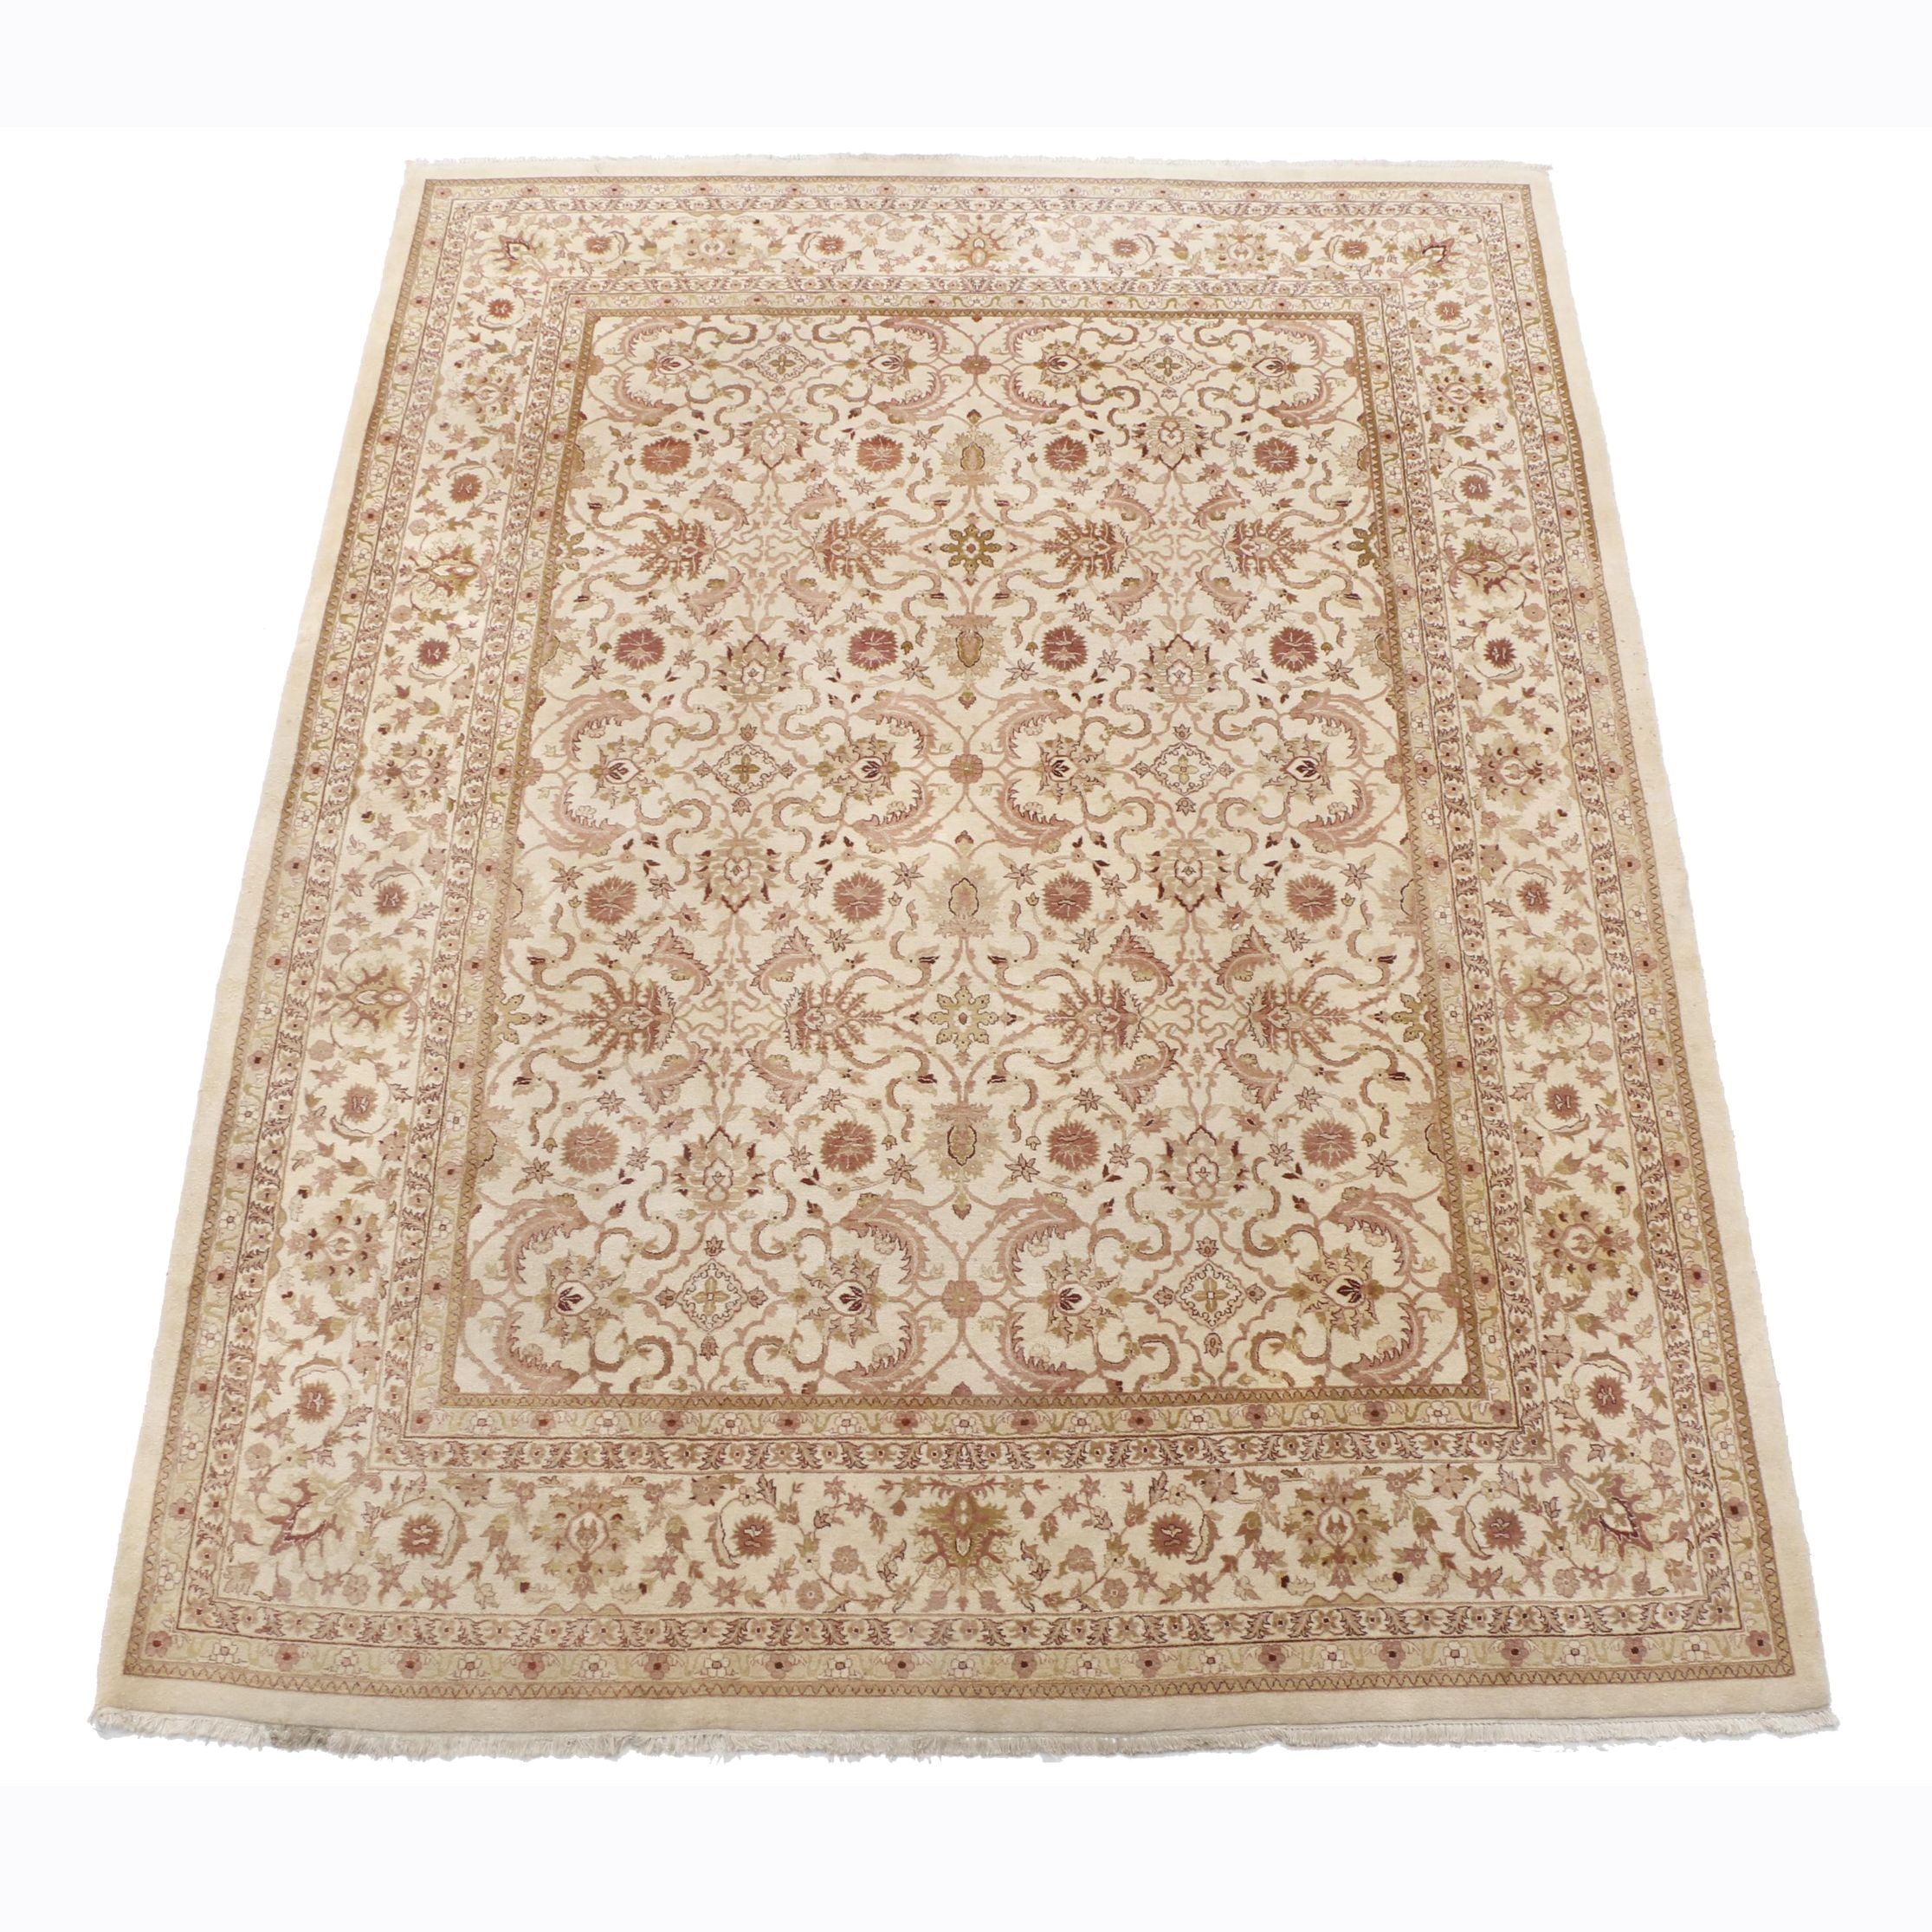 Hand-Knotted Sino-Persian Room Sized Area Rug